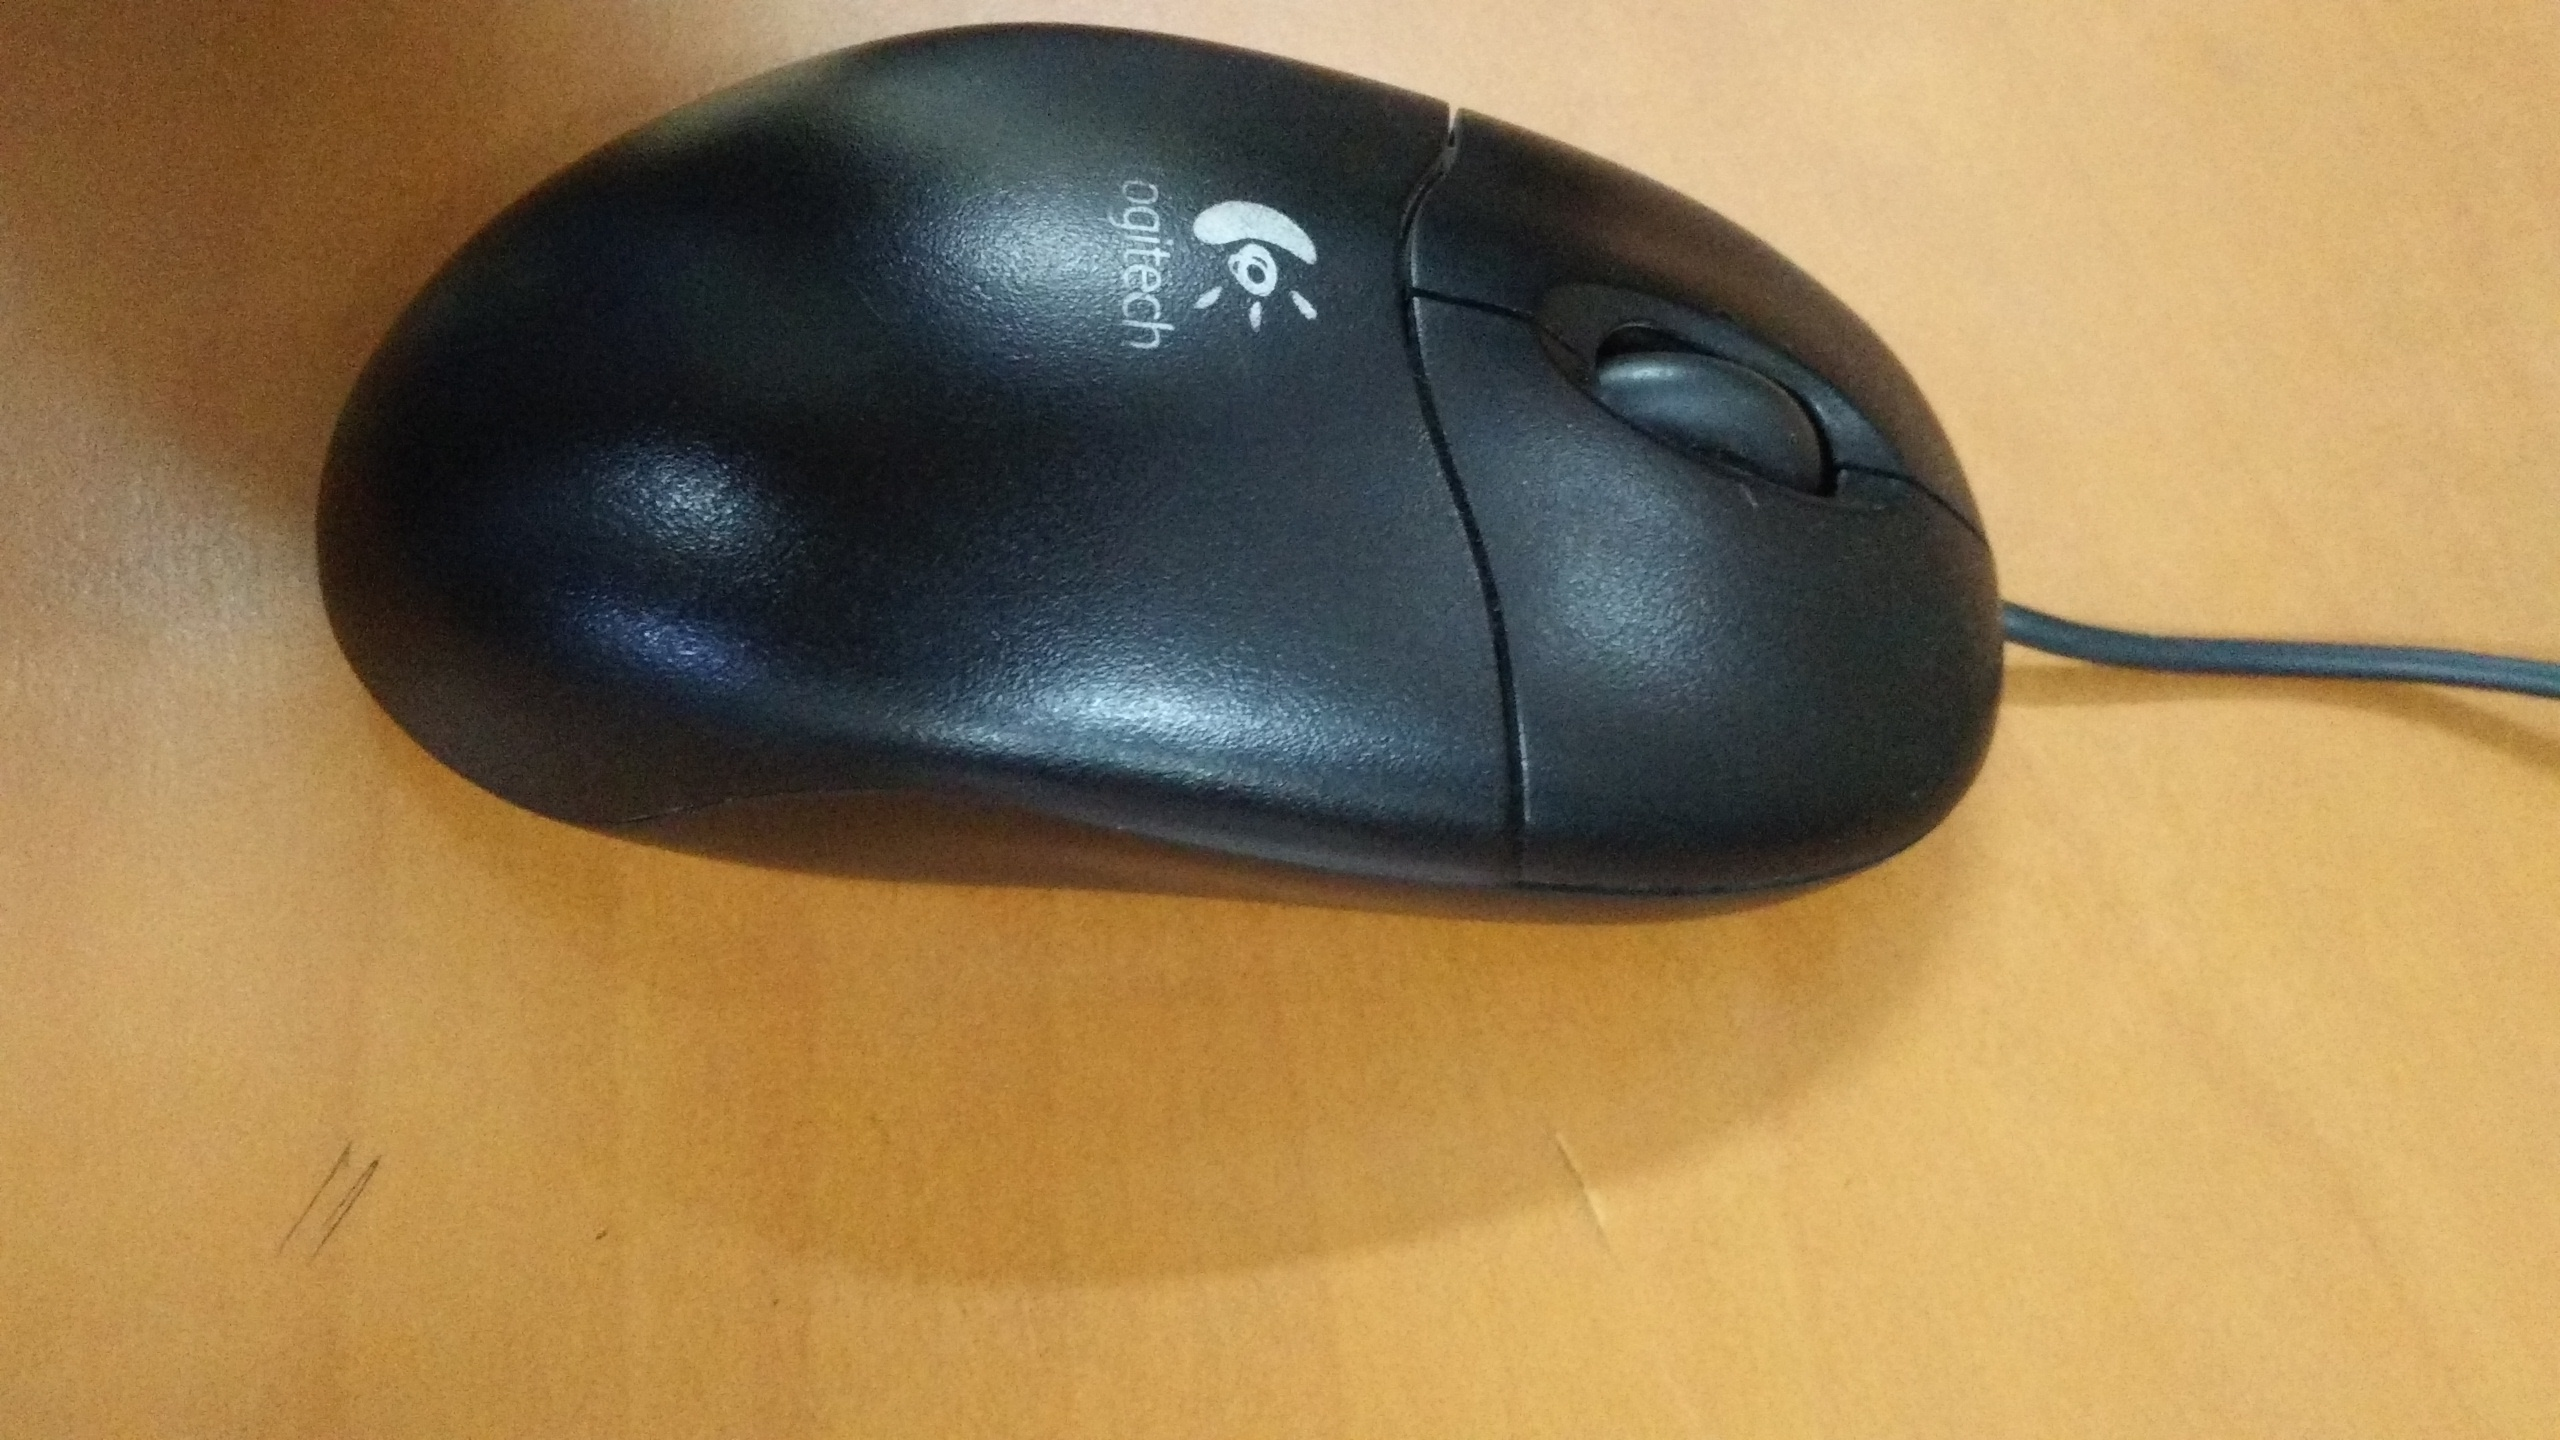 Mouse Logitech M100r Daftar Harga Terlengkap Indonesia Usb Optical B100 Source For Scrolling With Thumb Its Great One Very Sensitive And Switches Are